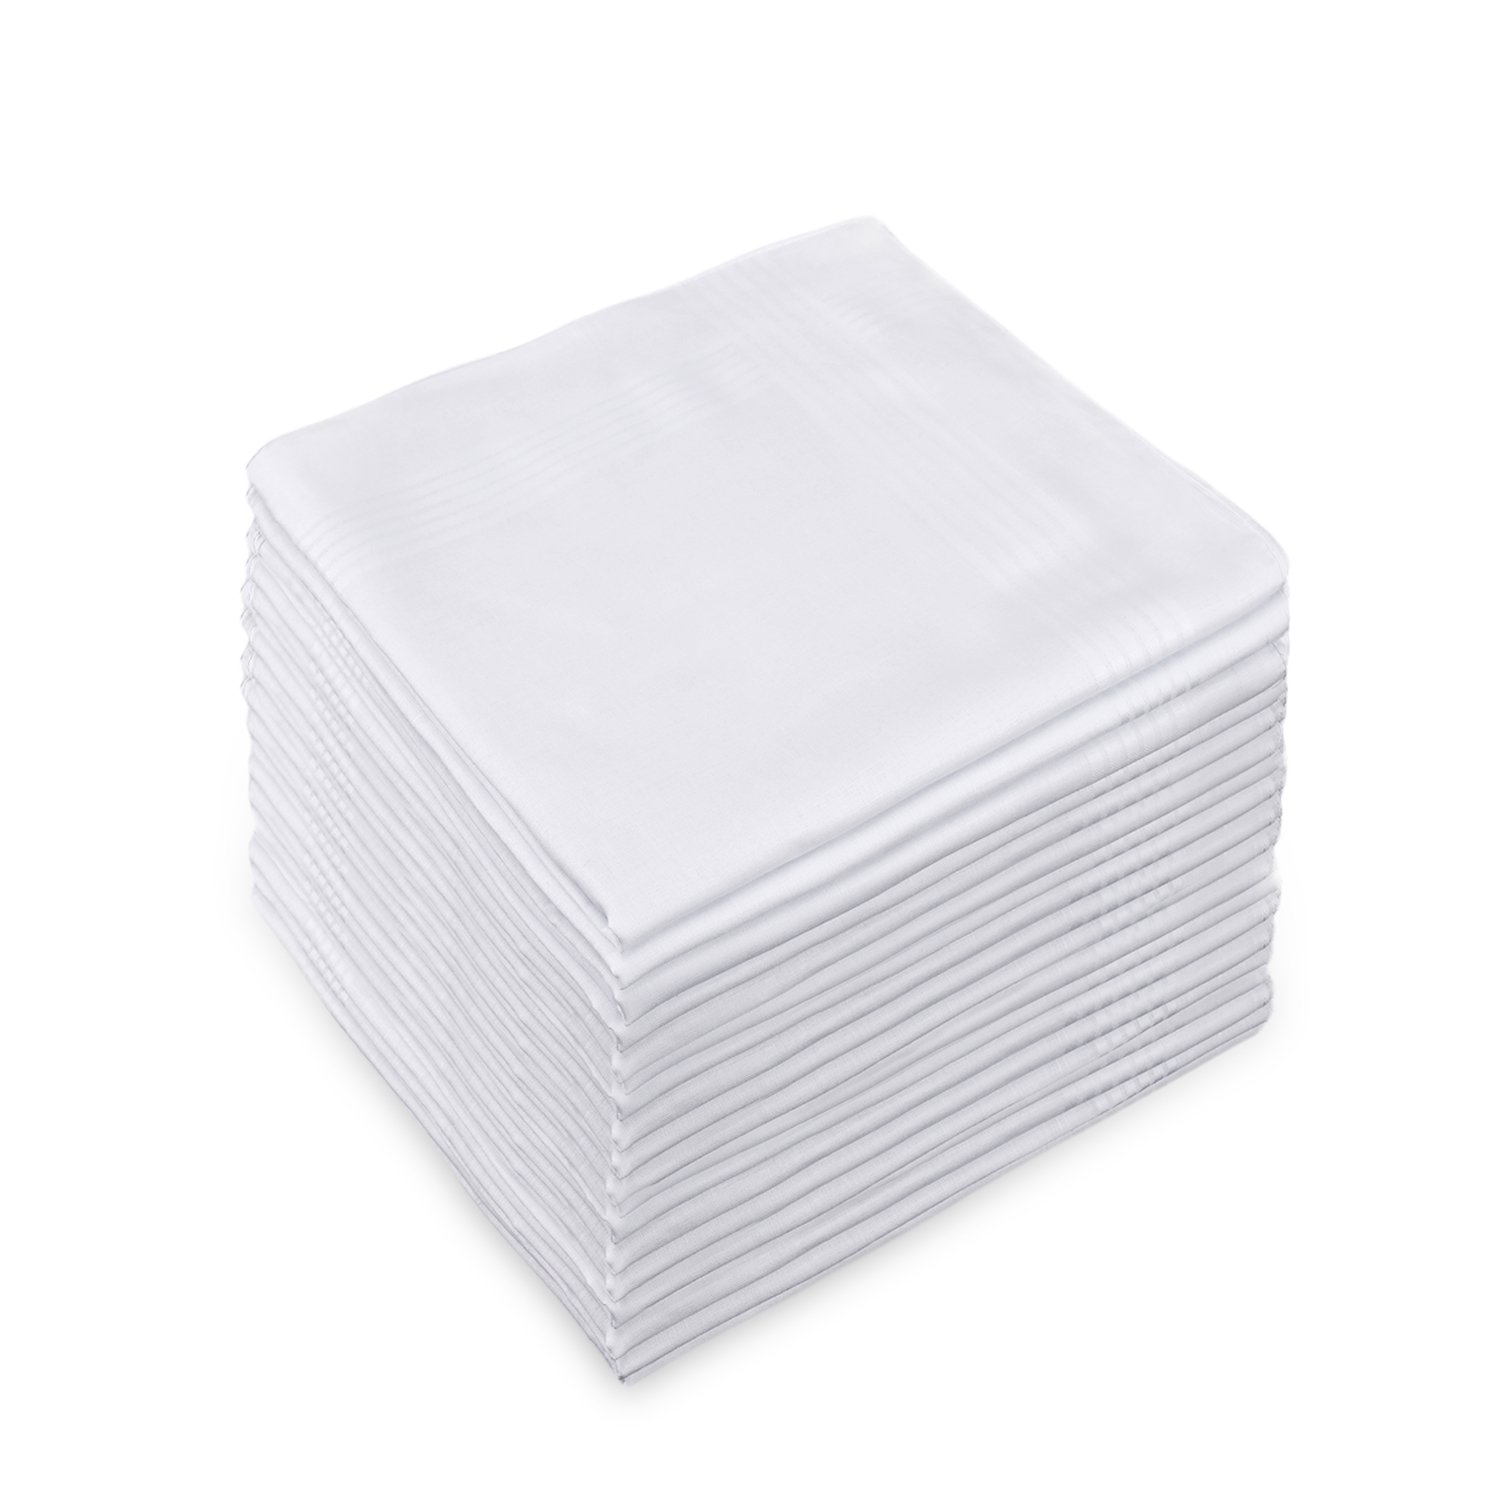 12 Pack Men's Handkerchief White 100% CottonClassic Hanky (12pcs)